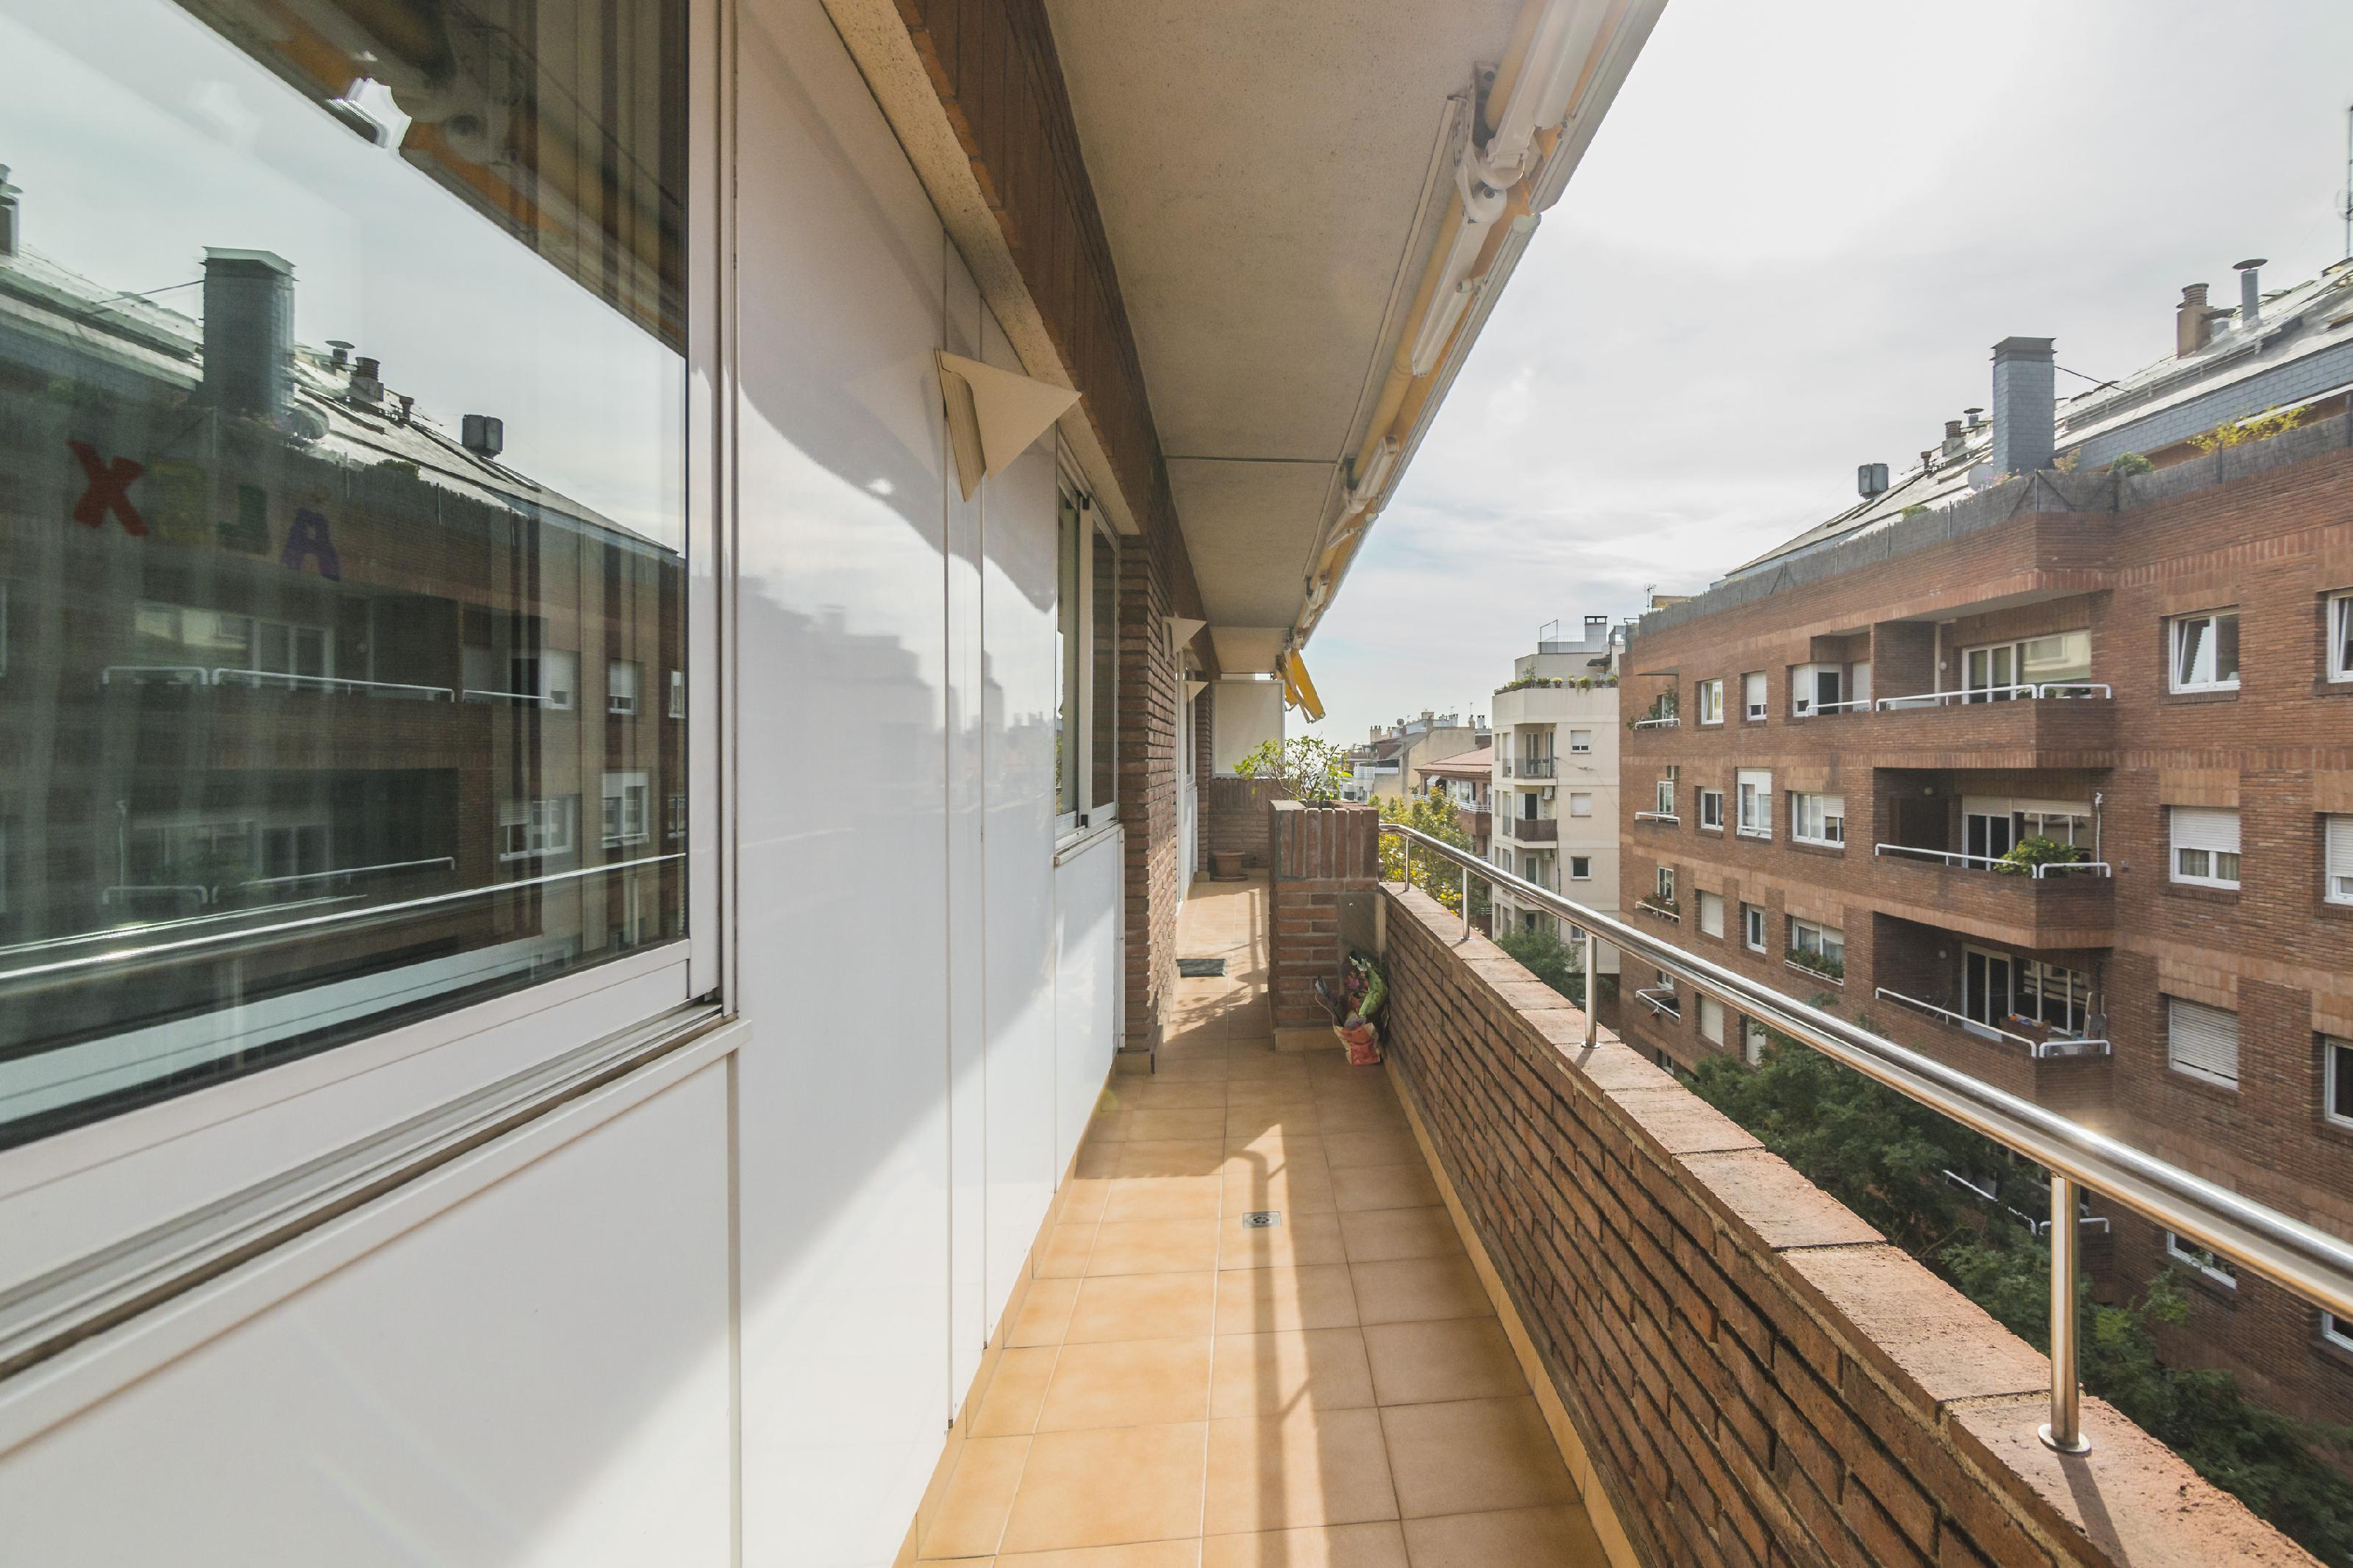 232637 Penthouse for sale in Sarrià-Sant Gervasi, Sant Gervasi-Galvany 16